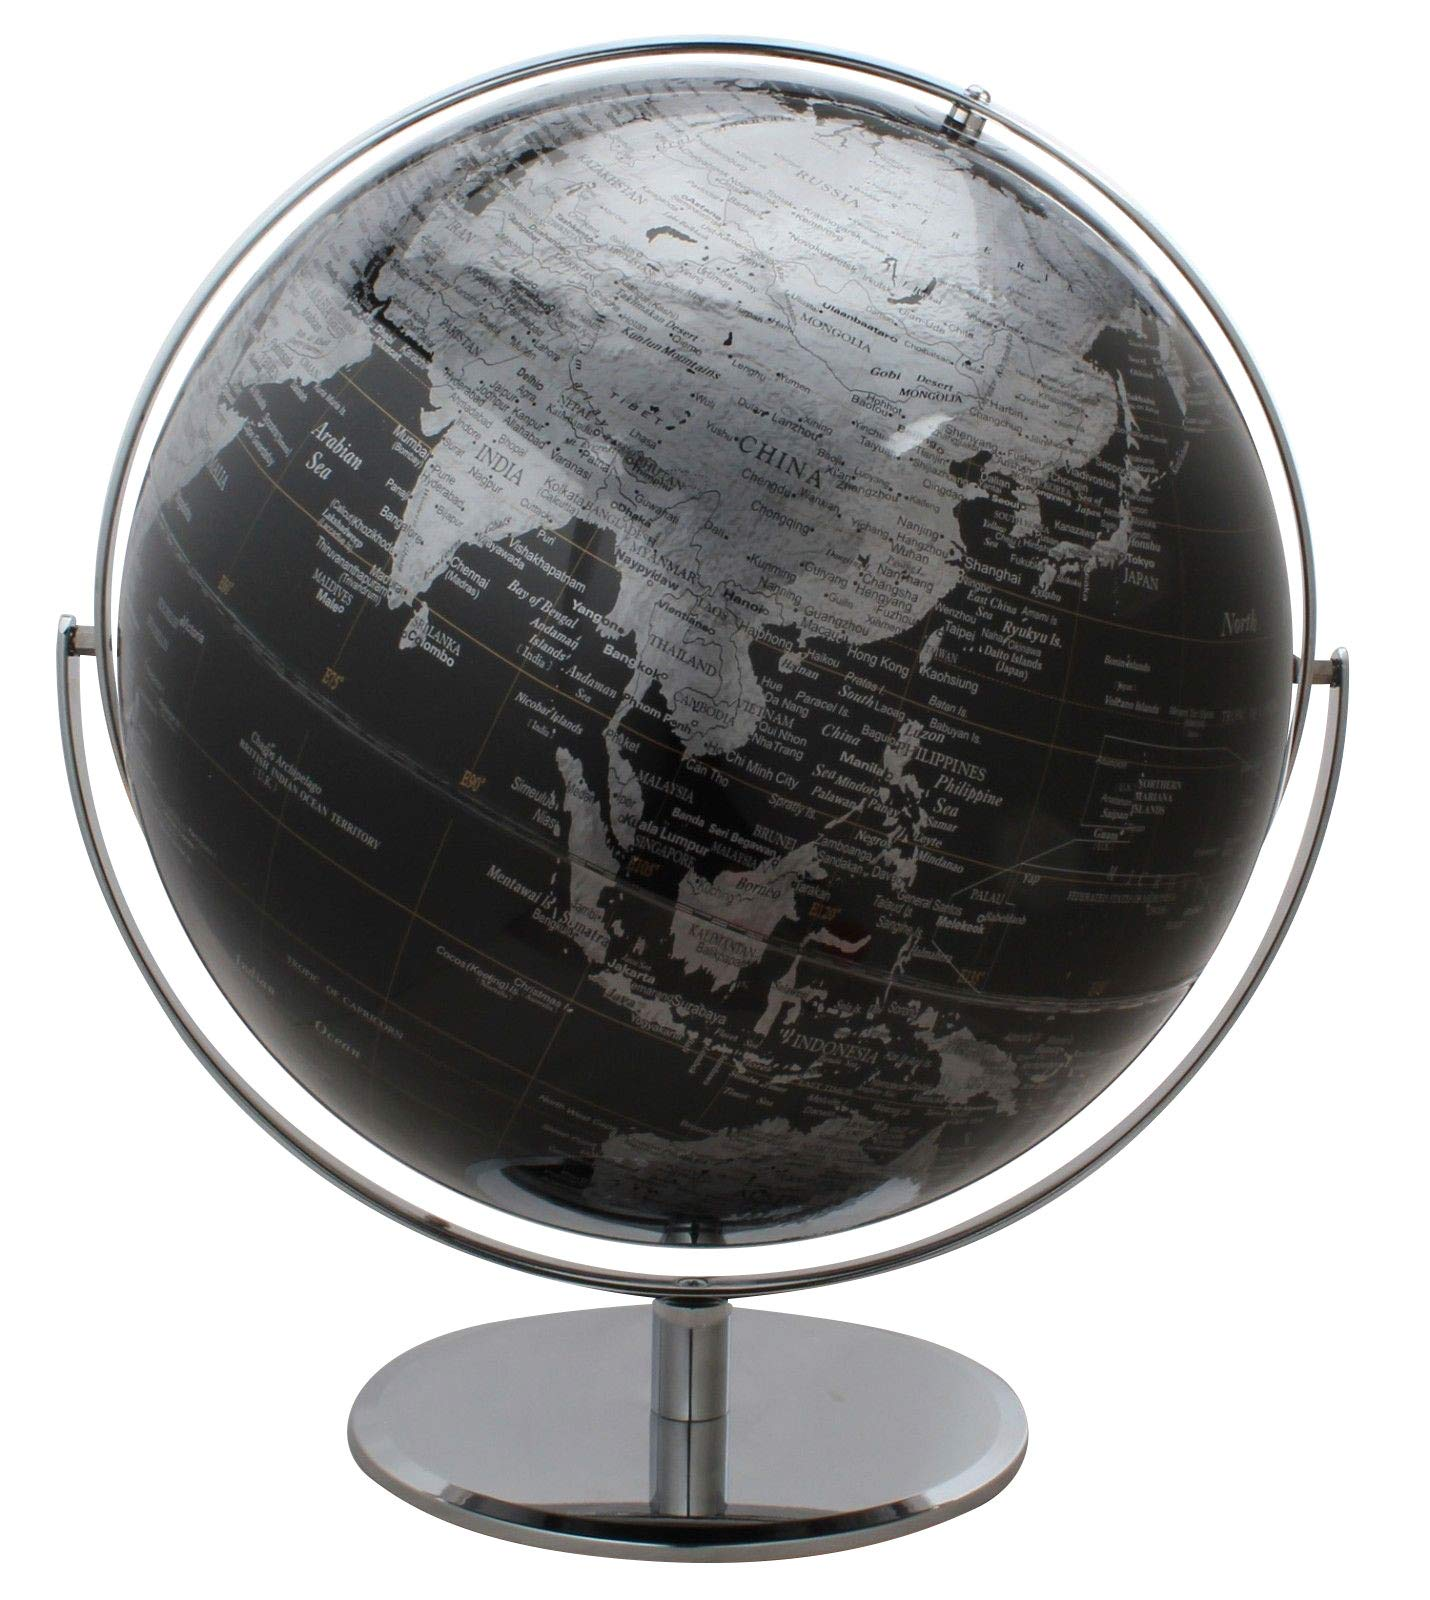 Columbus Black World Globe - Extra Large 17'' Diameter, Raised Relief, Impressive Two-Tone Finish by J. Thomas